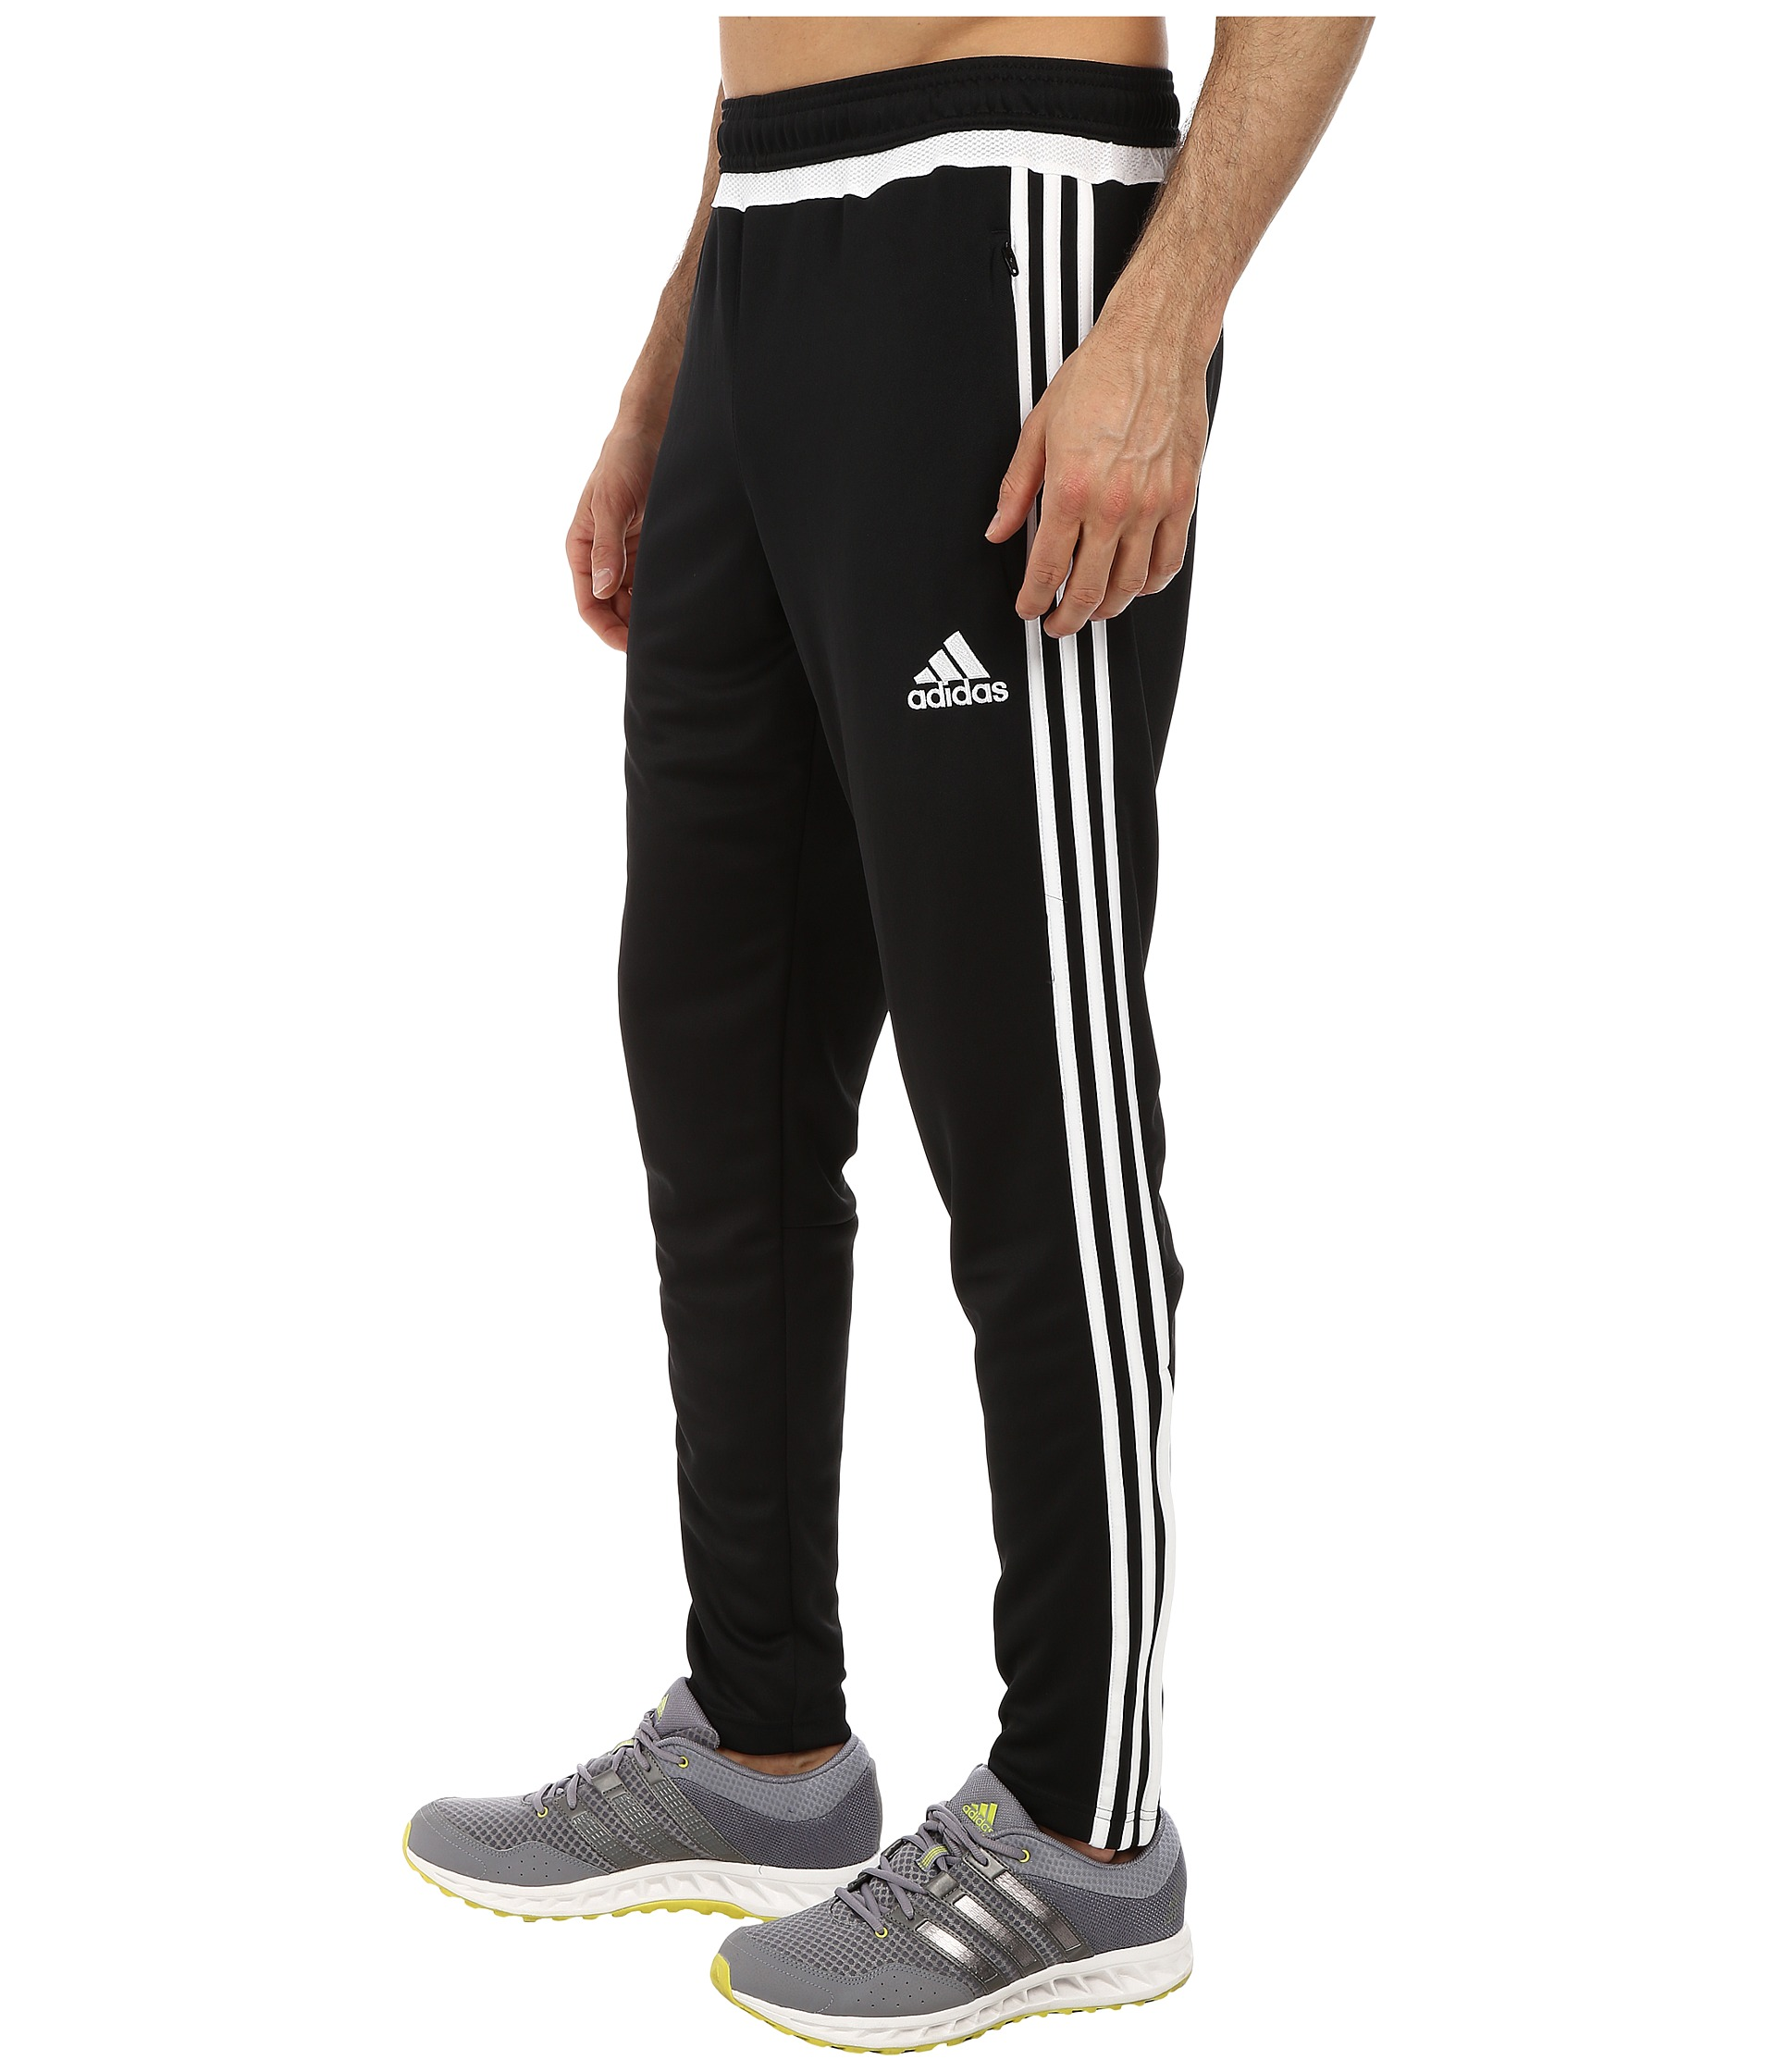 adidas tiro 15 training pant free shipping. Black Bedroom Furniture Sets. Home Design Ideas